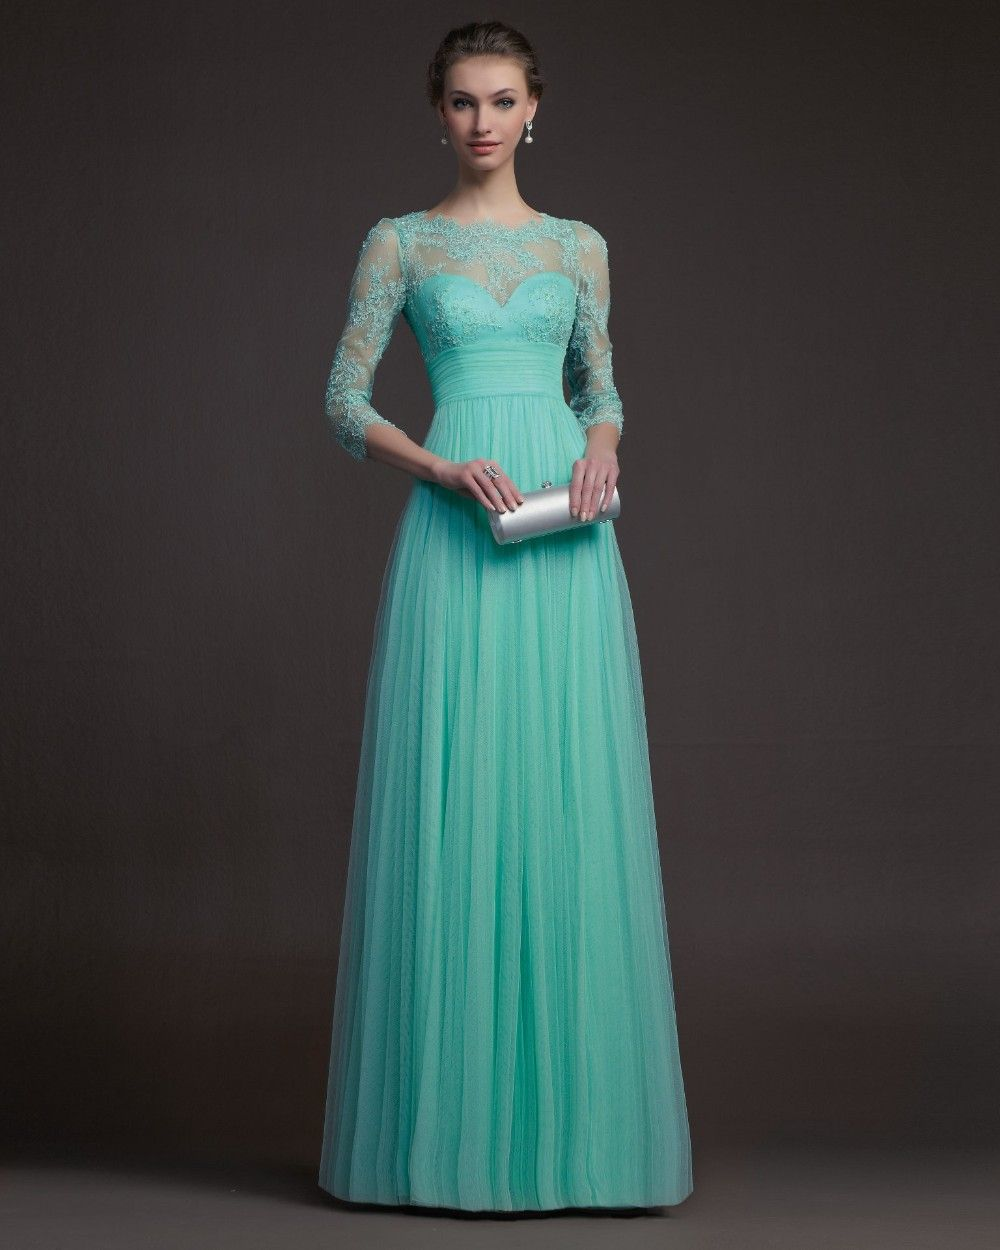 59 best ideas about dress on Pinterest | Long prom dresses, One ...